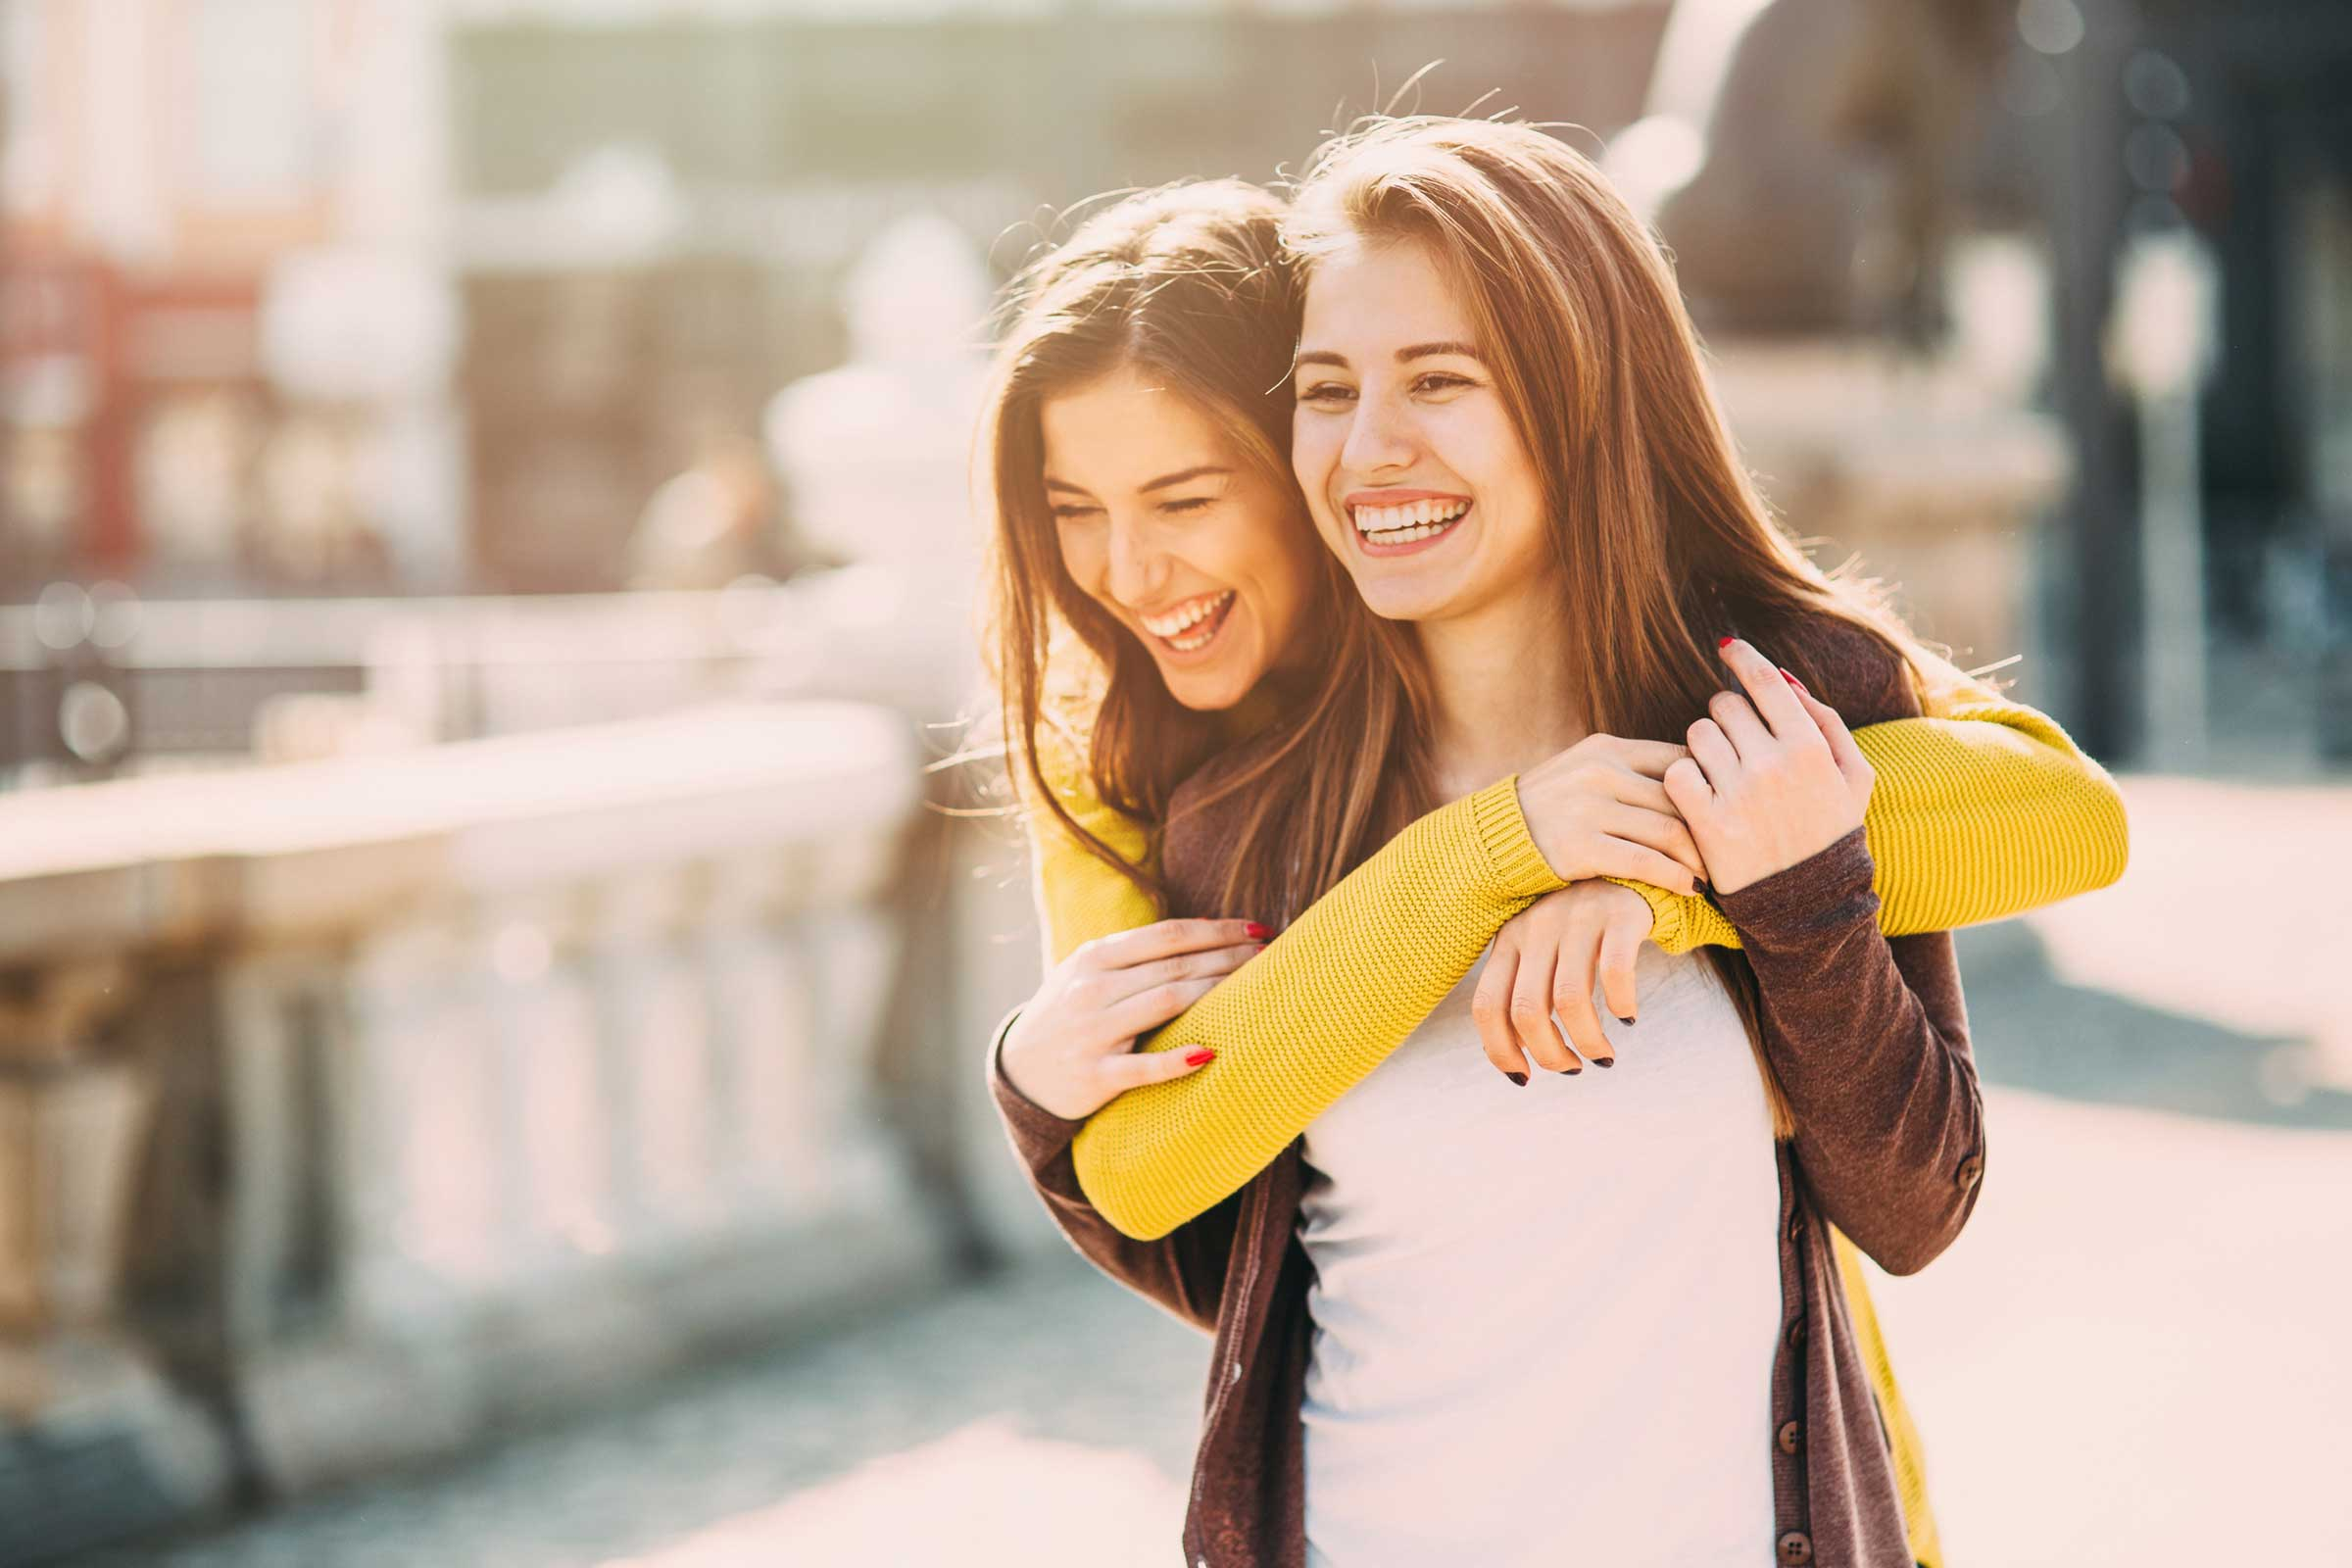 Radiance-Defies-Weight-and-heavy-energy-two-girls-with-big smiles